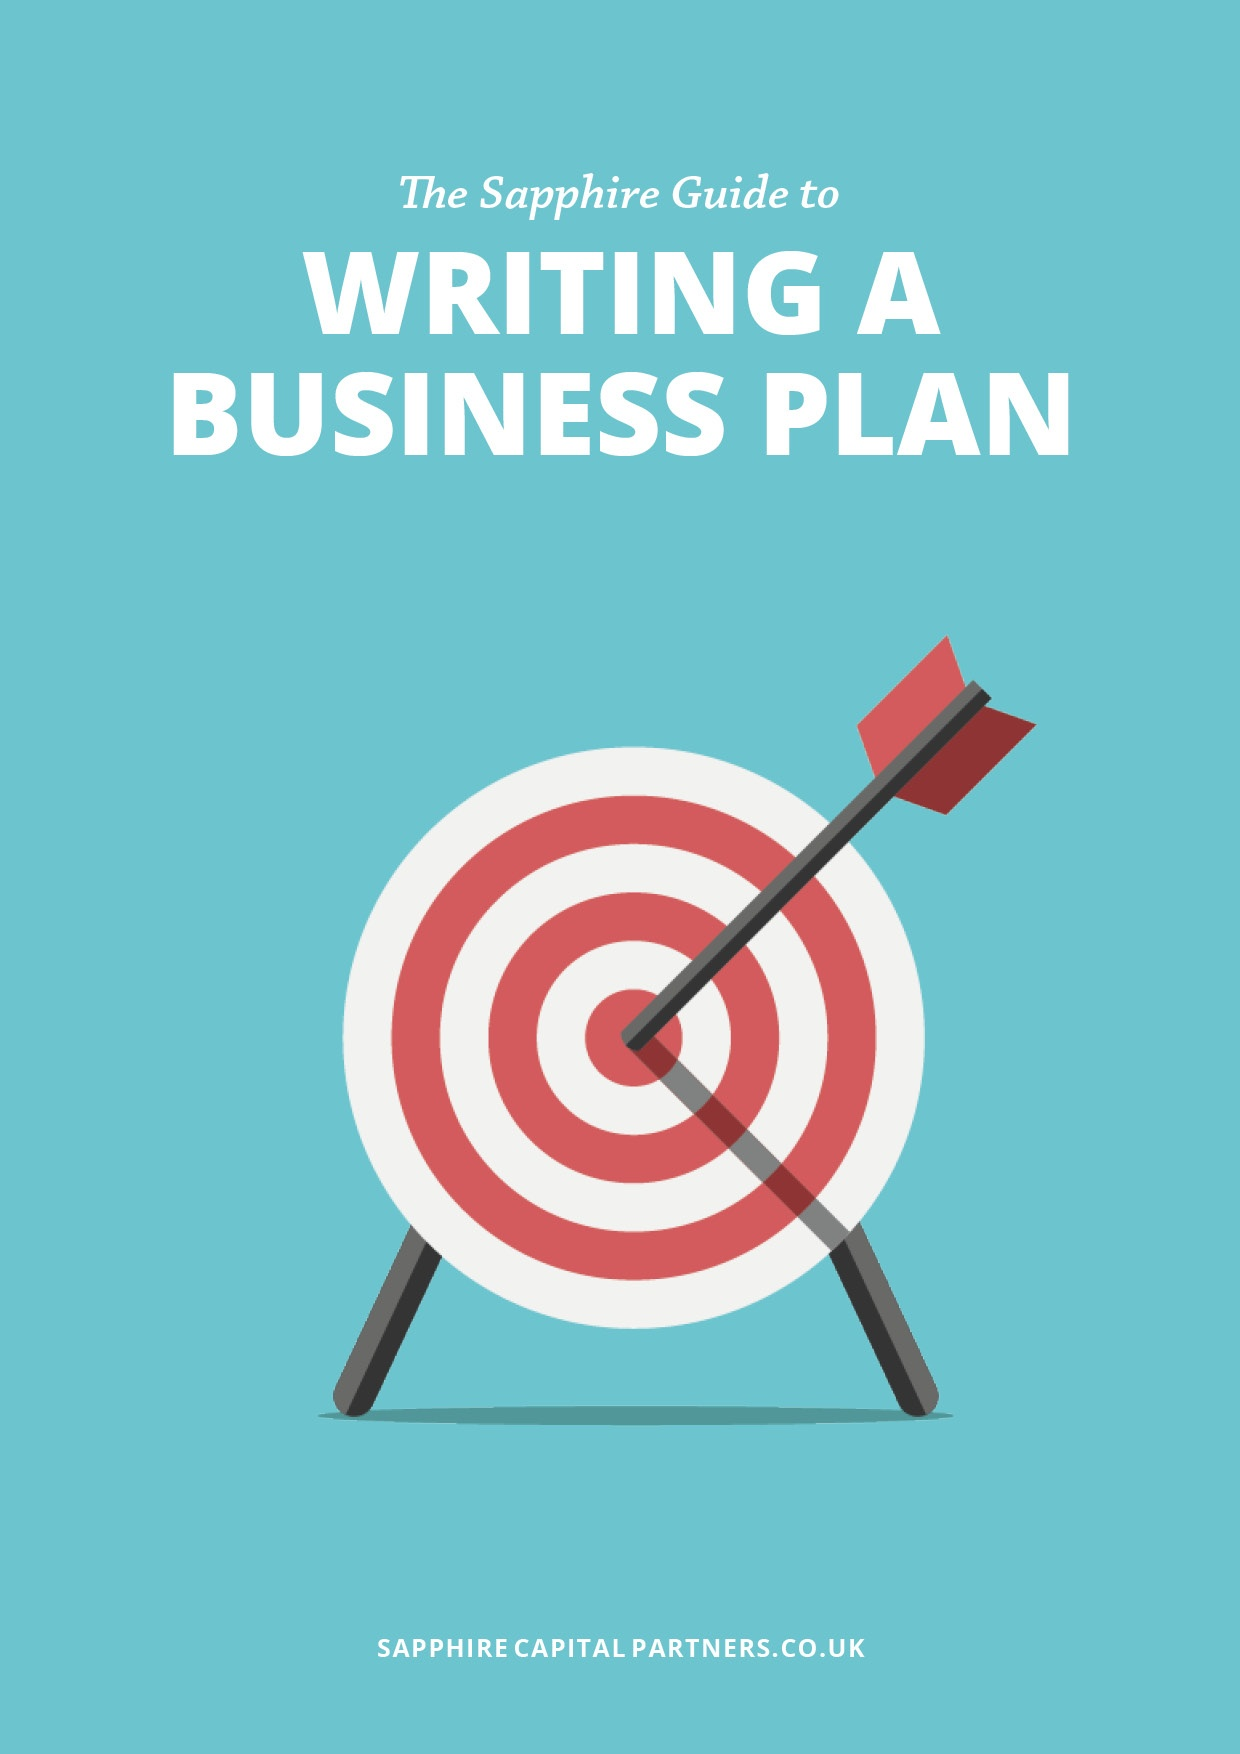 The Sapphire Guide to Writing a Business Plan